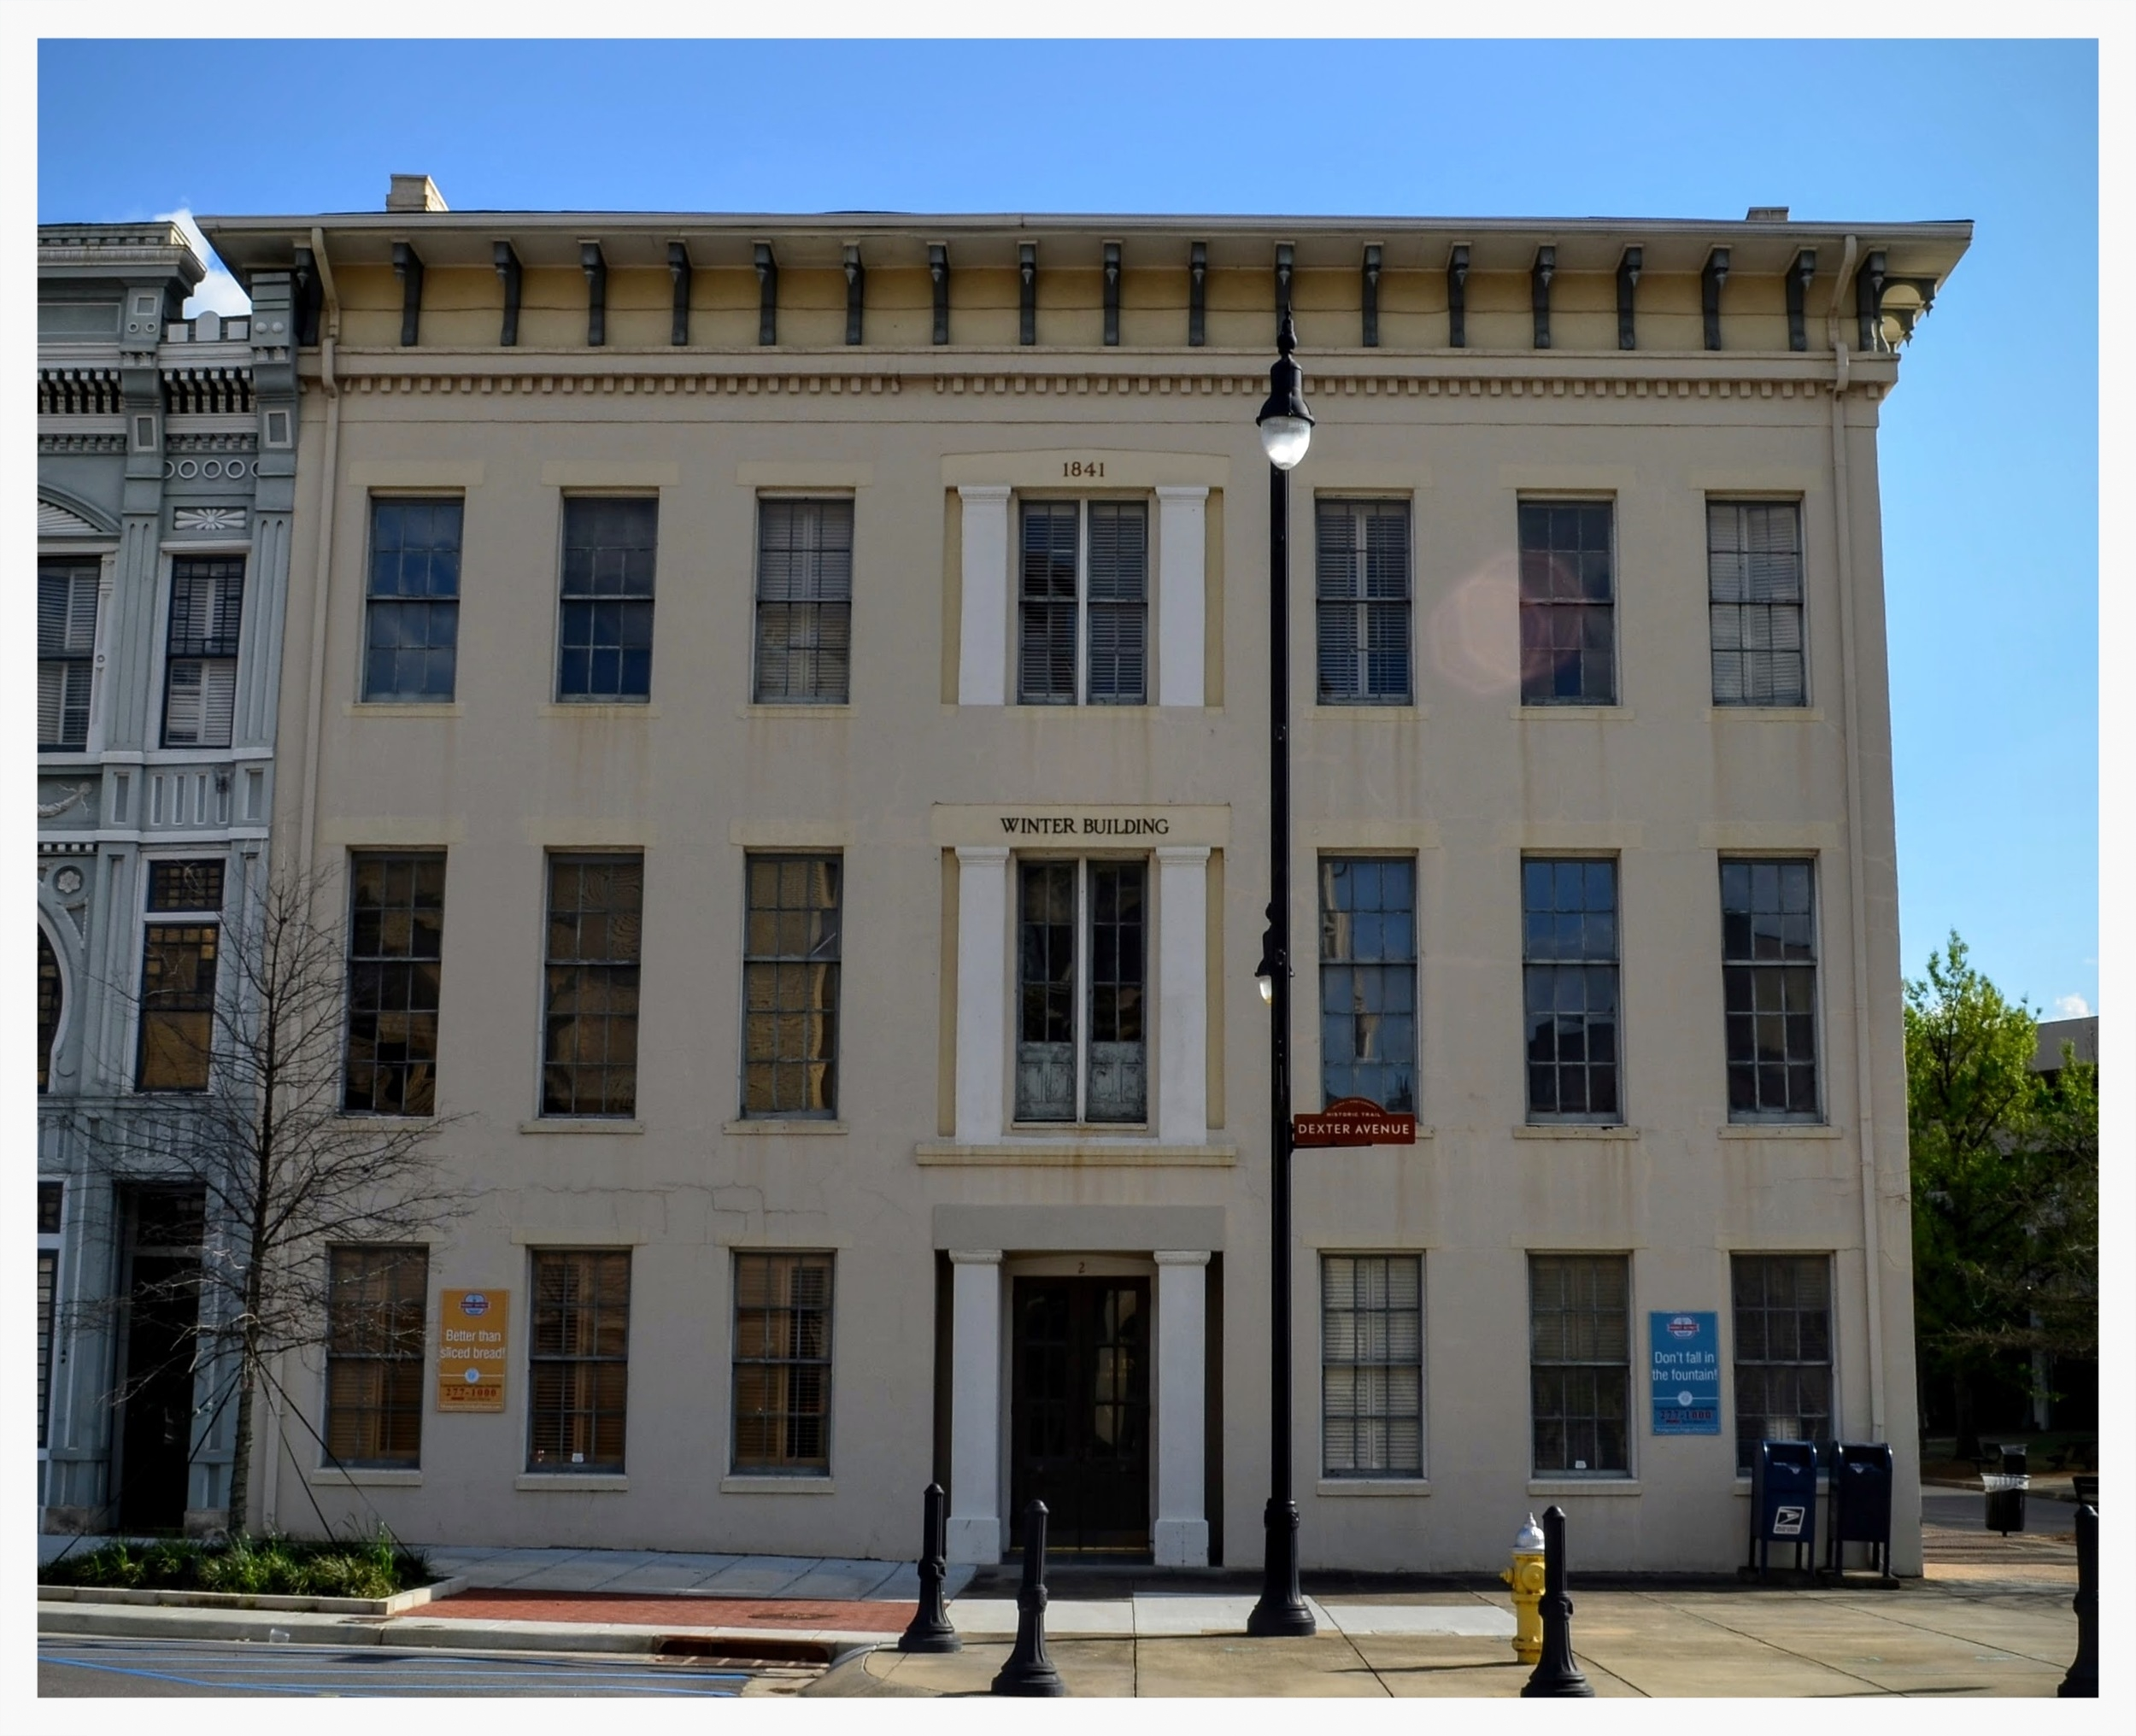 Front of the Winter Building from Dexter Avenue, Montgomery, Montgomery County, Alabama